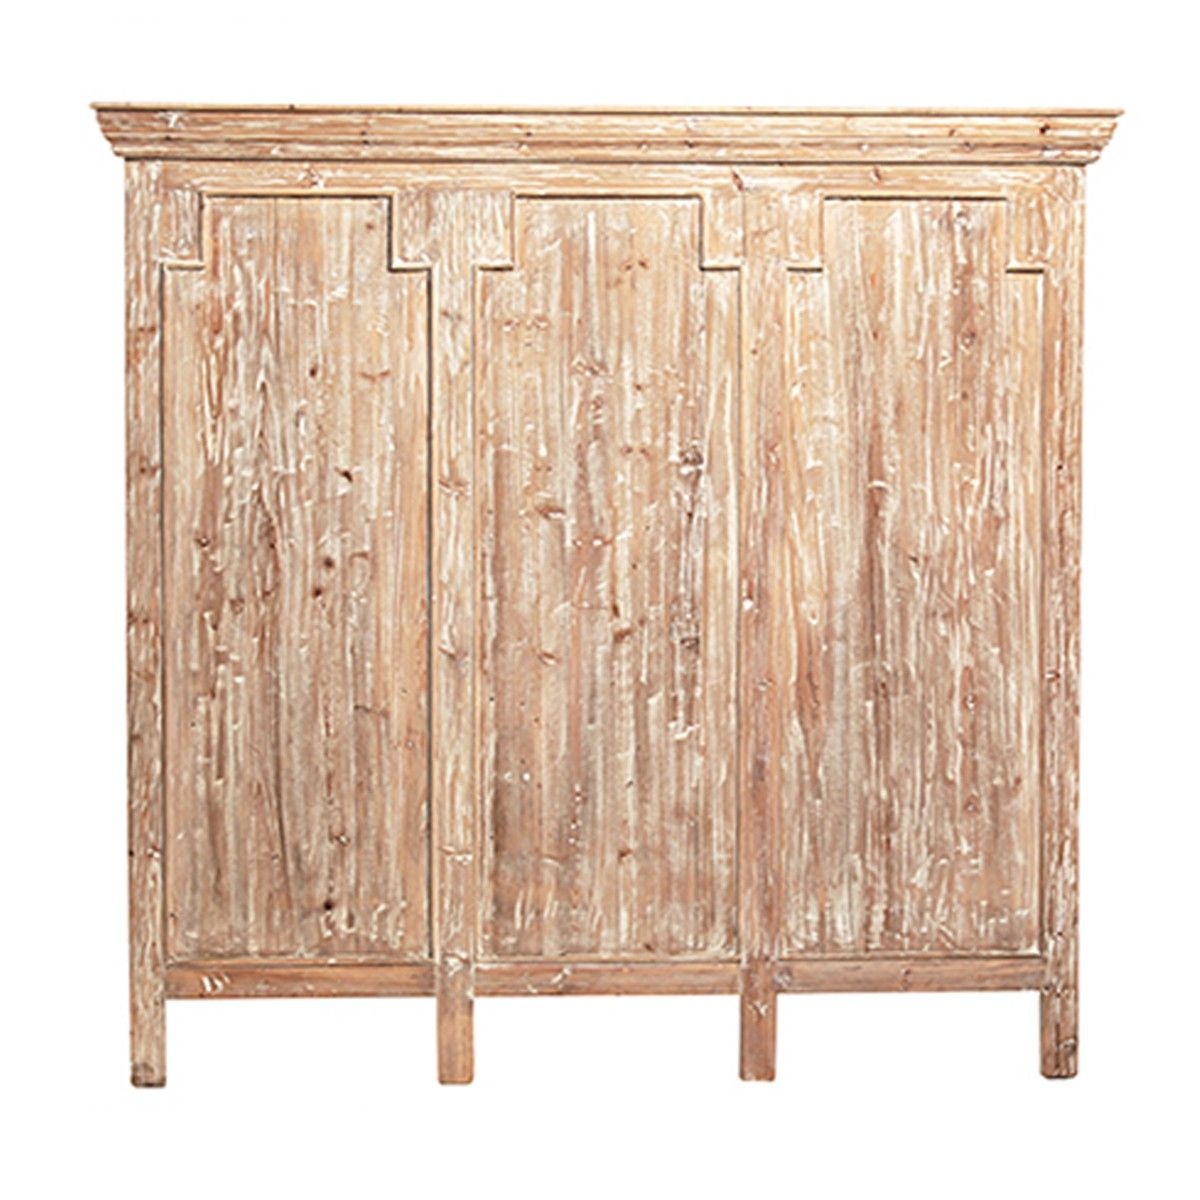 Crafted from solid reclaimed pine hand rubbed white wash finish